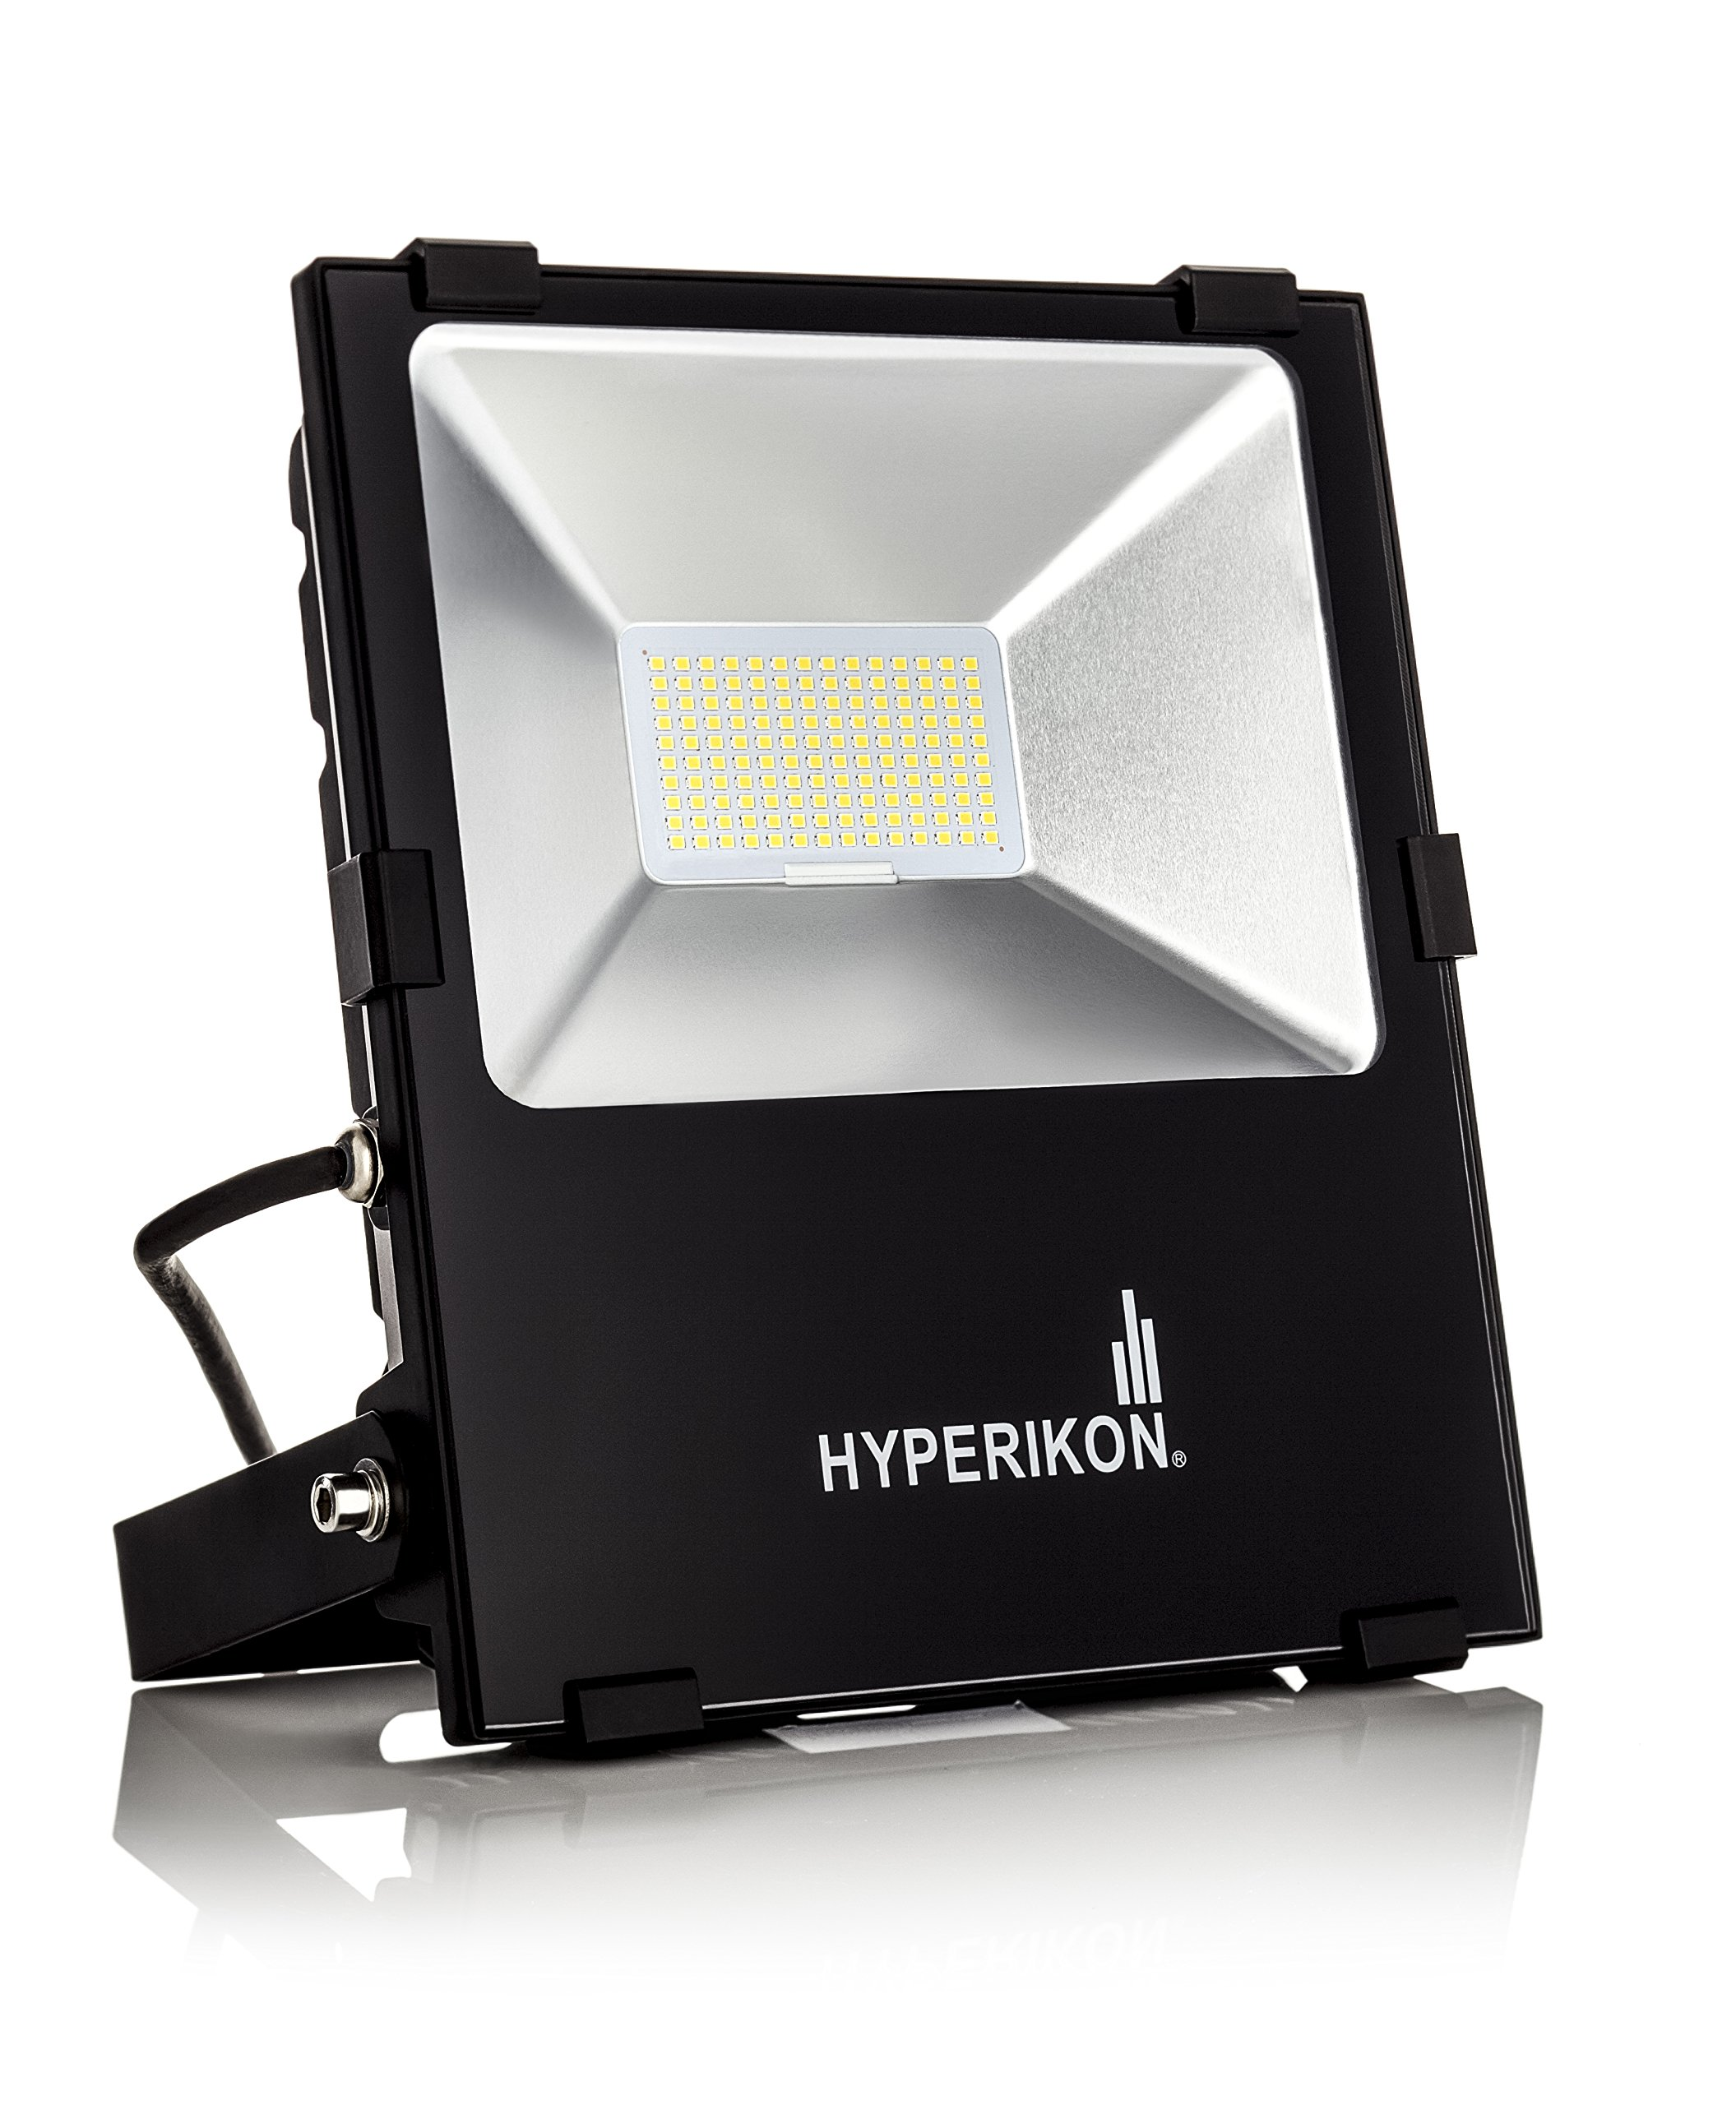 Hyperikon LED Flood Light,100w (500w Equivalent), 5000K (Crystal White Glow), Waterproof, IP65, 120-277v, Instant On, UL and DLC by Hyperikon